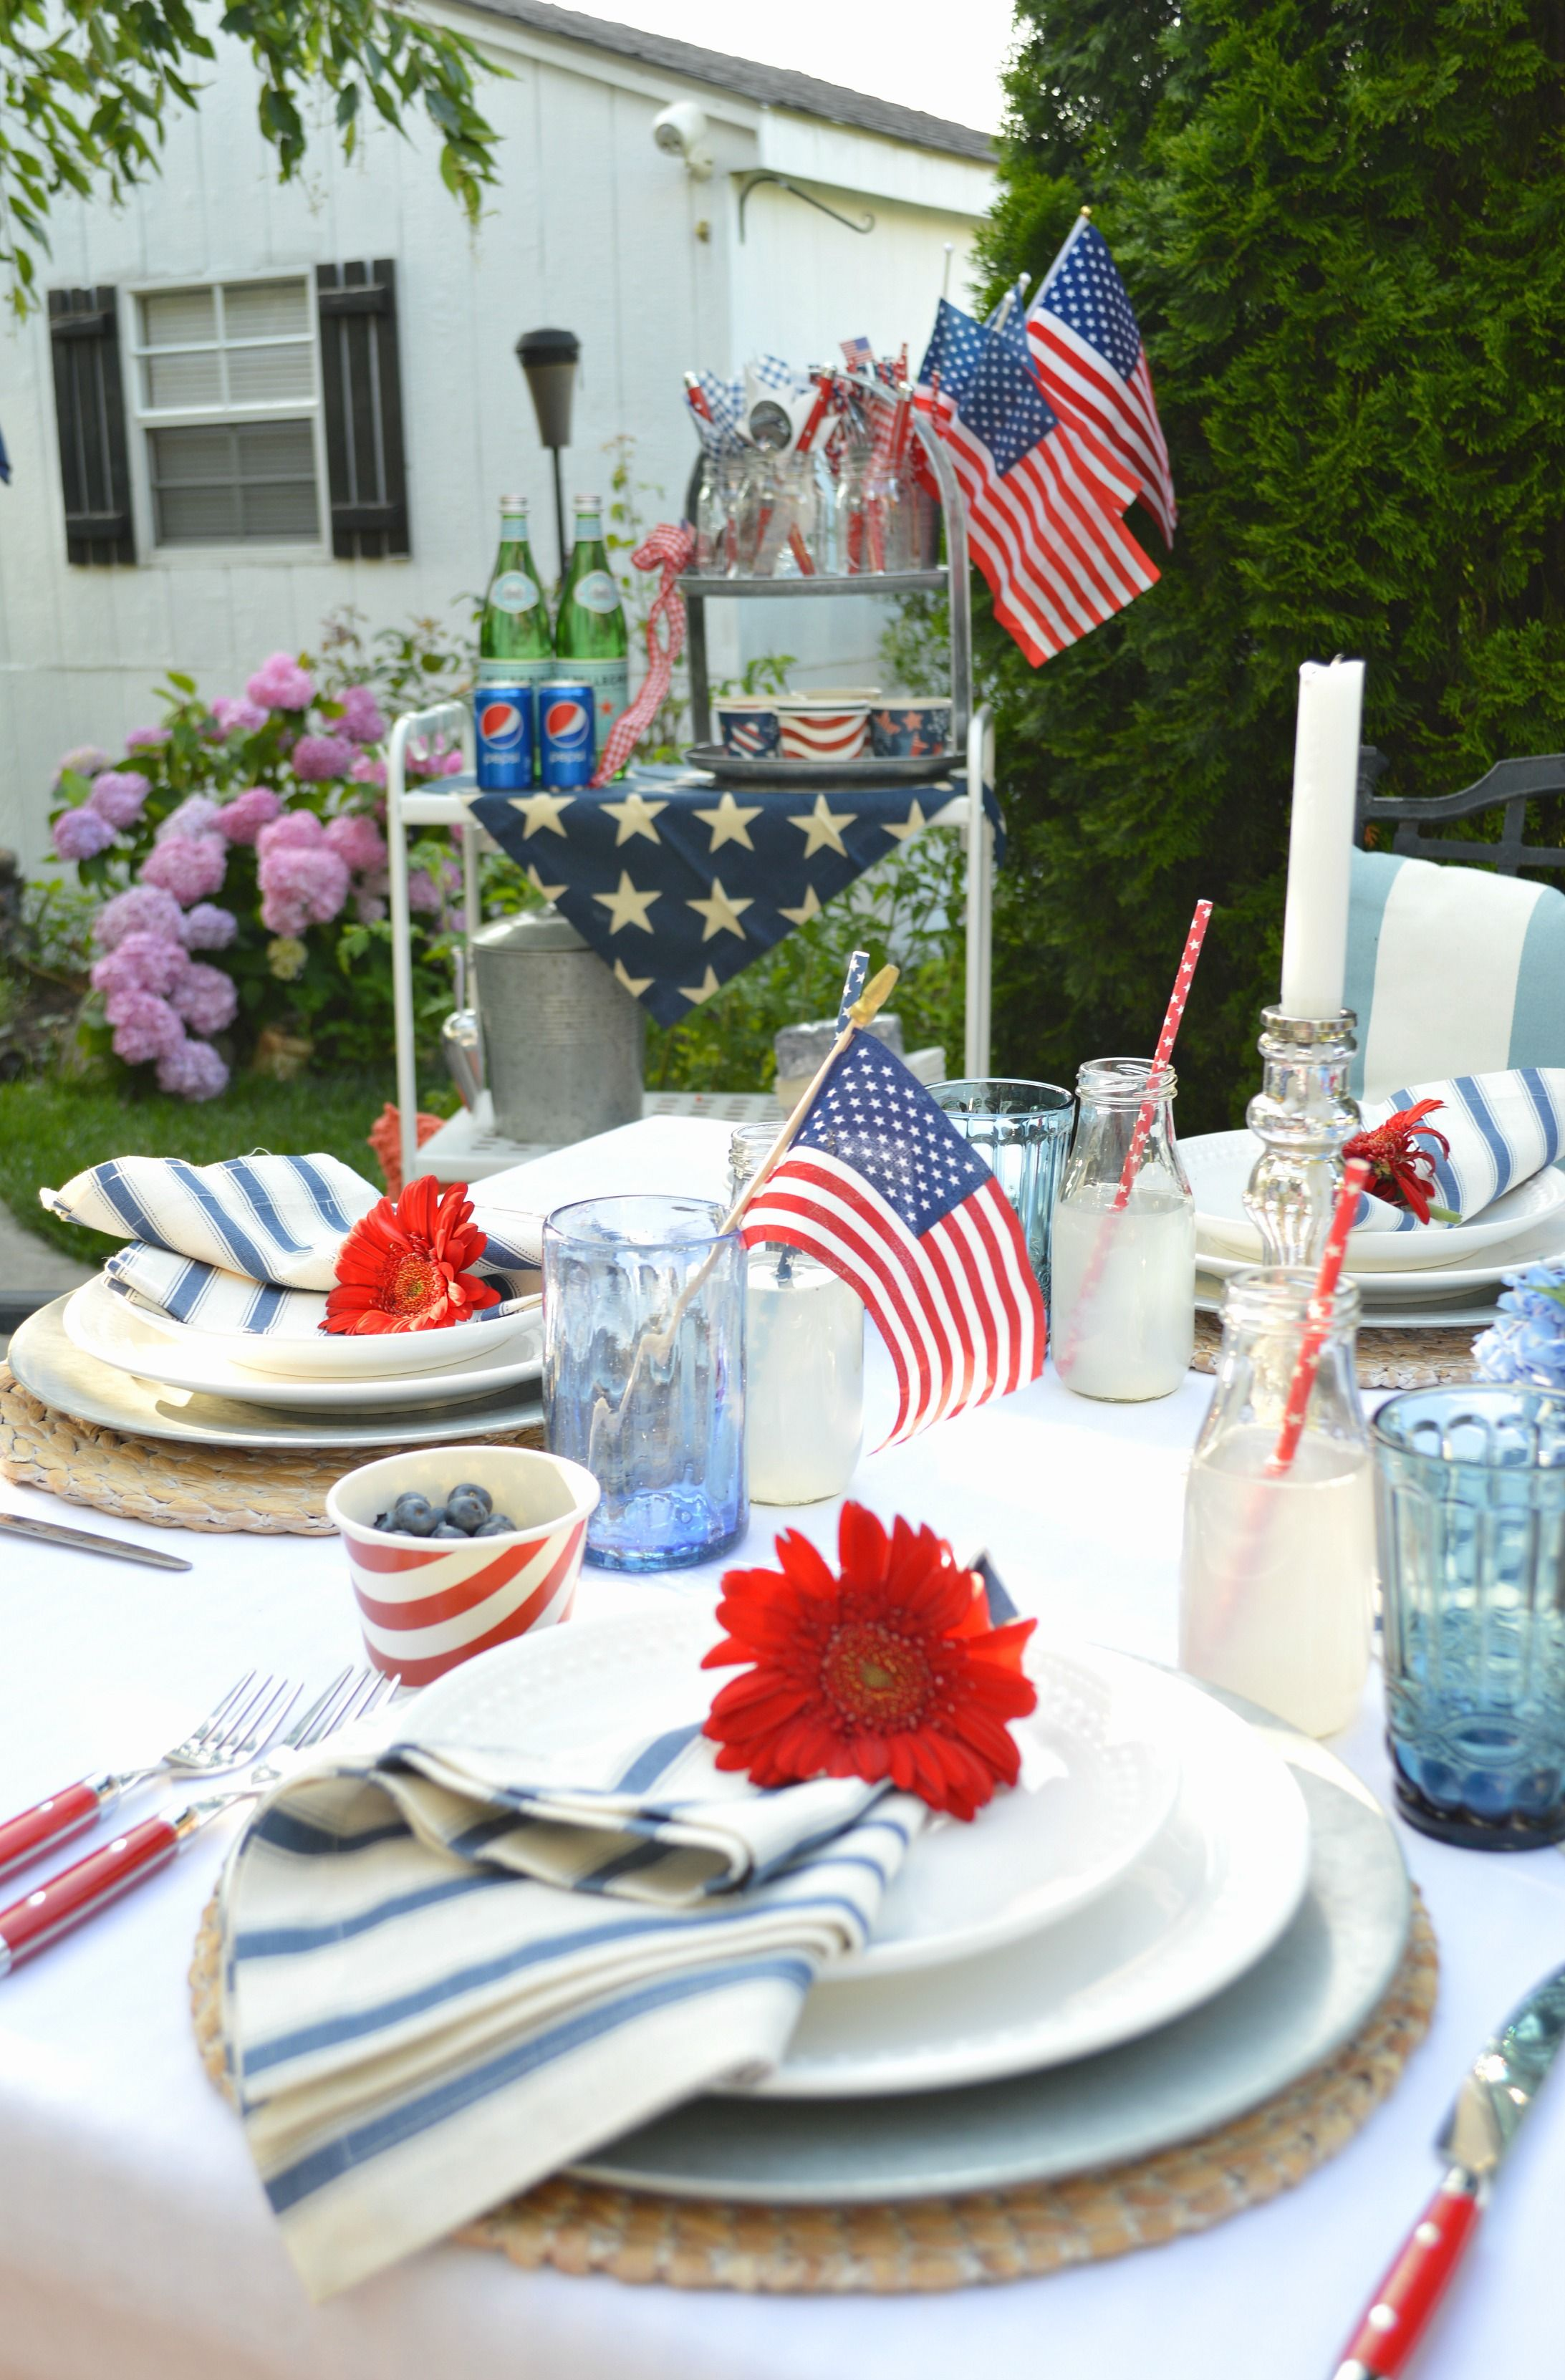 5 Easy Steps For Creating A Festive Patriotic Table Blue Table